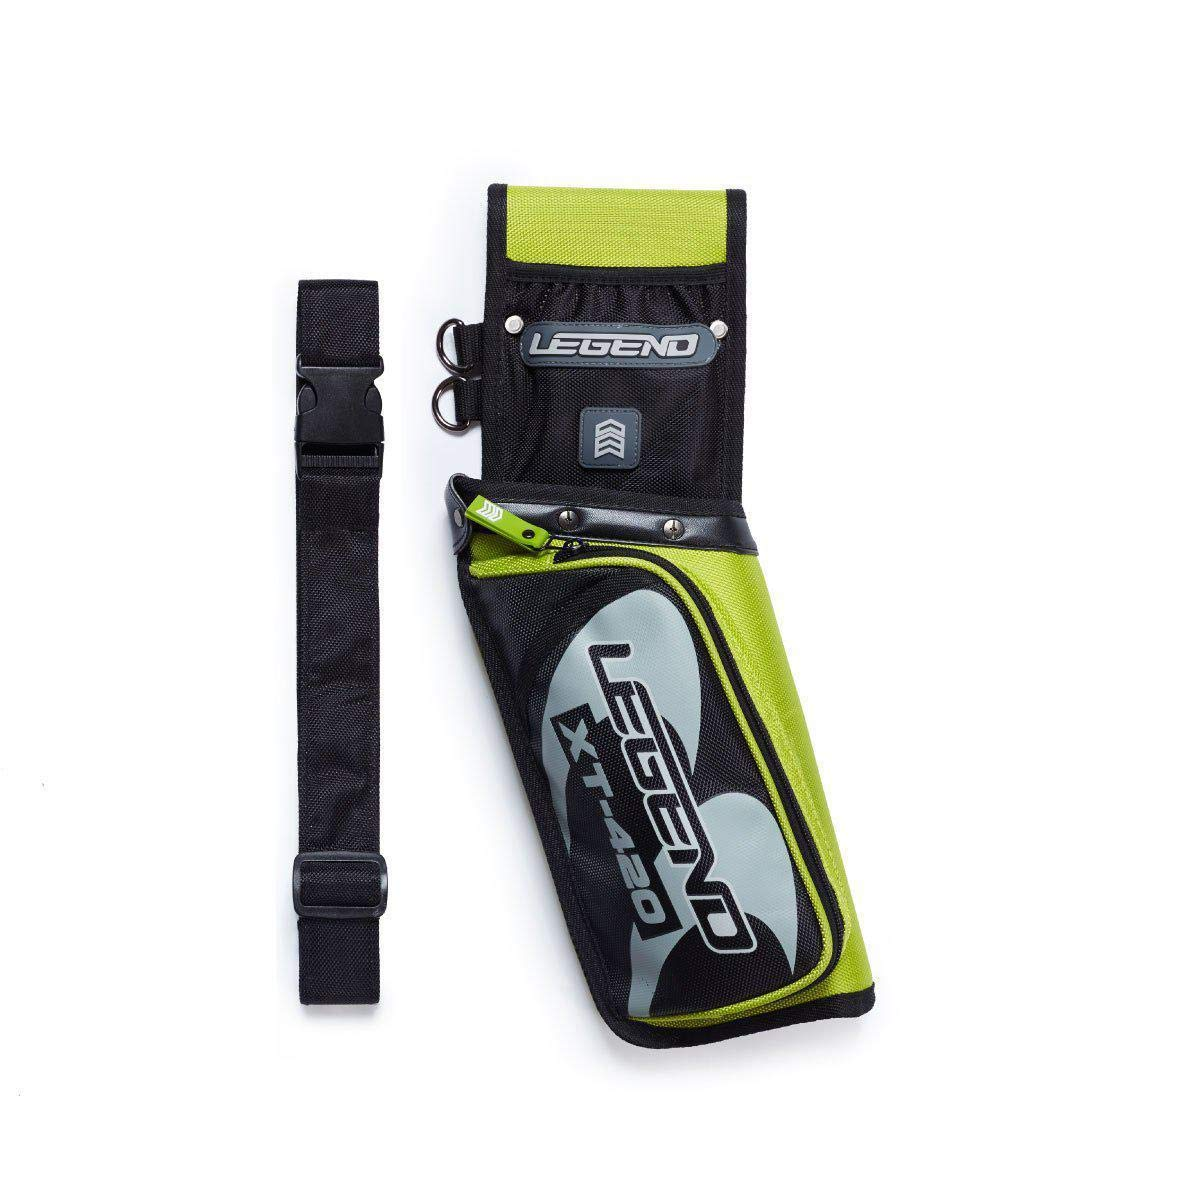 Legend Archery Field Quiver for Arrows with Multi-Pocket Nylon Belt Hip Arrow Holder Lightweight and Functional XT420 (Green/Right)